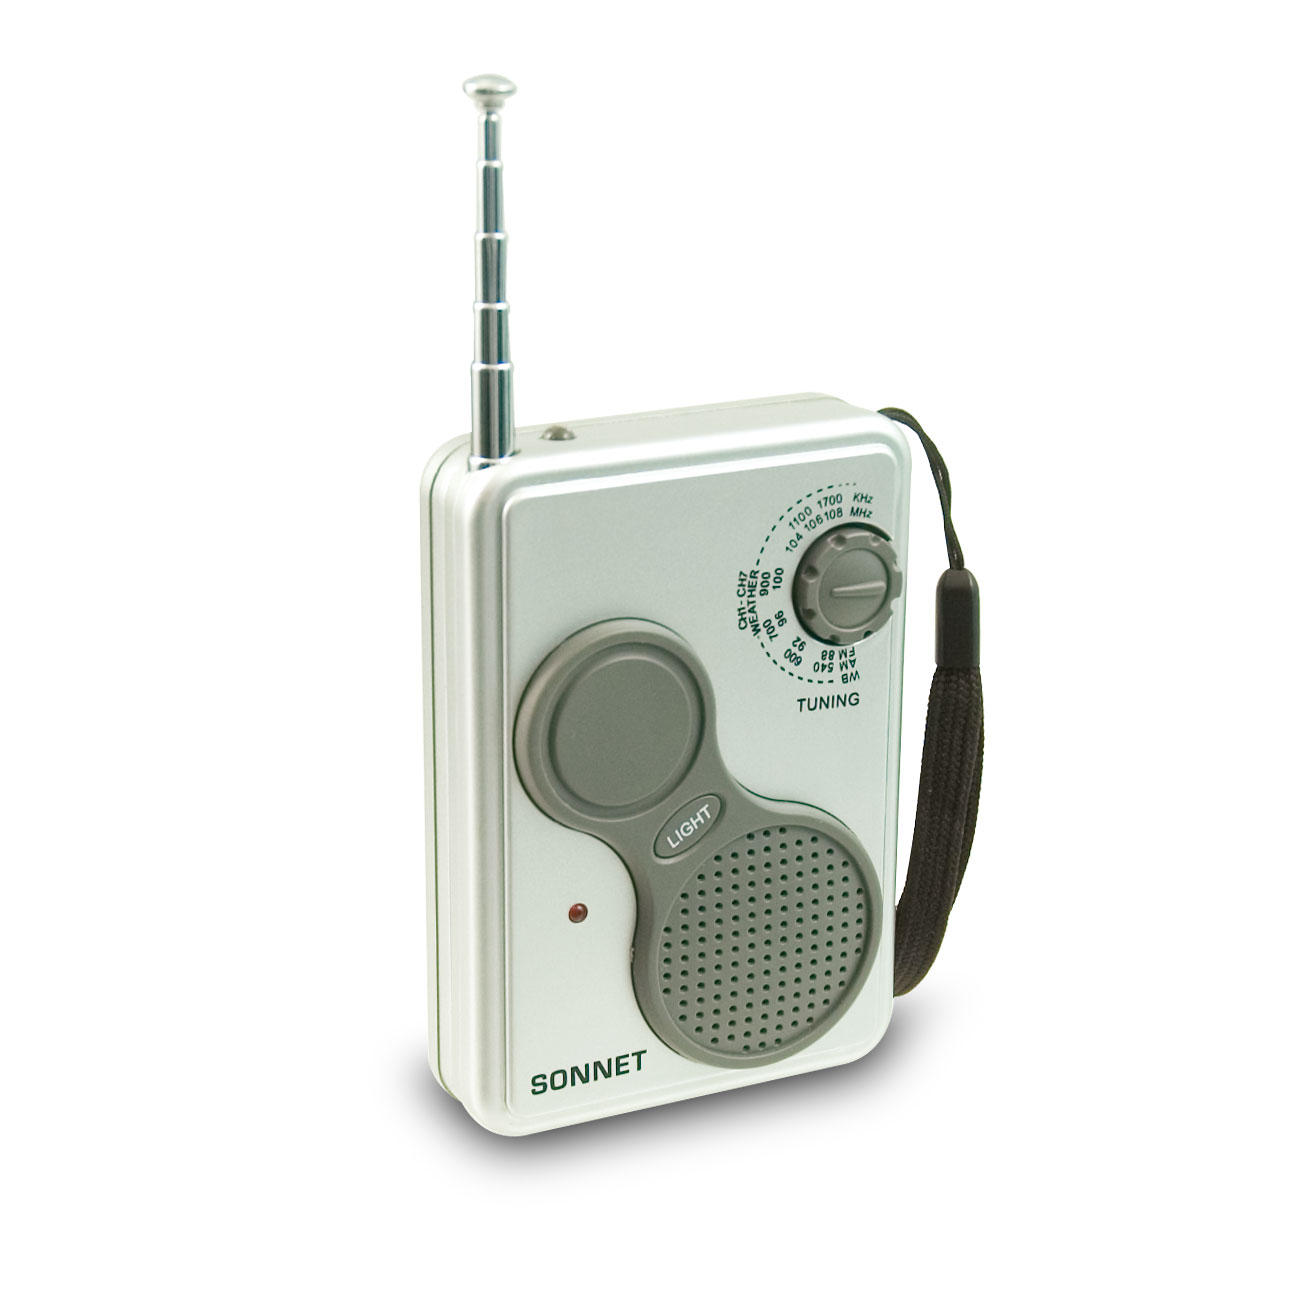 AM/FM WB Radio Price: $16.95